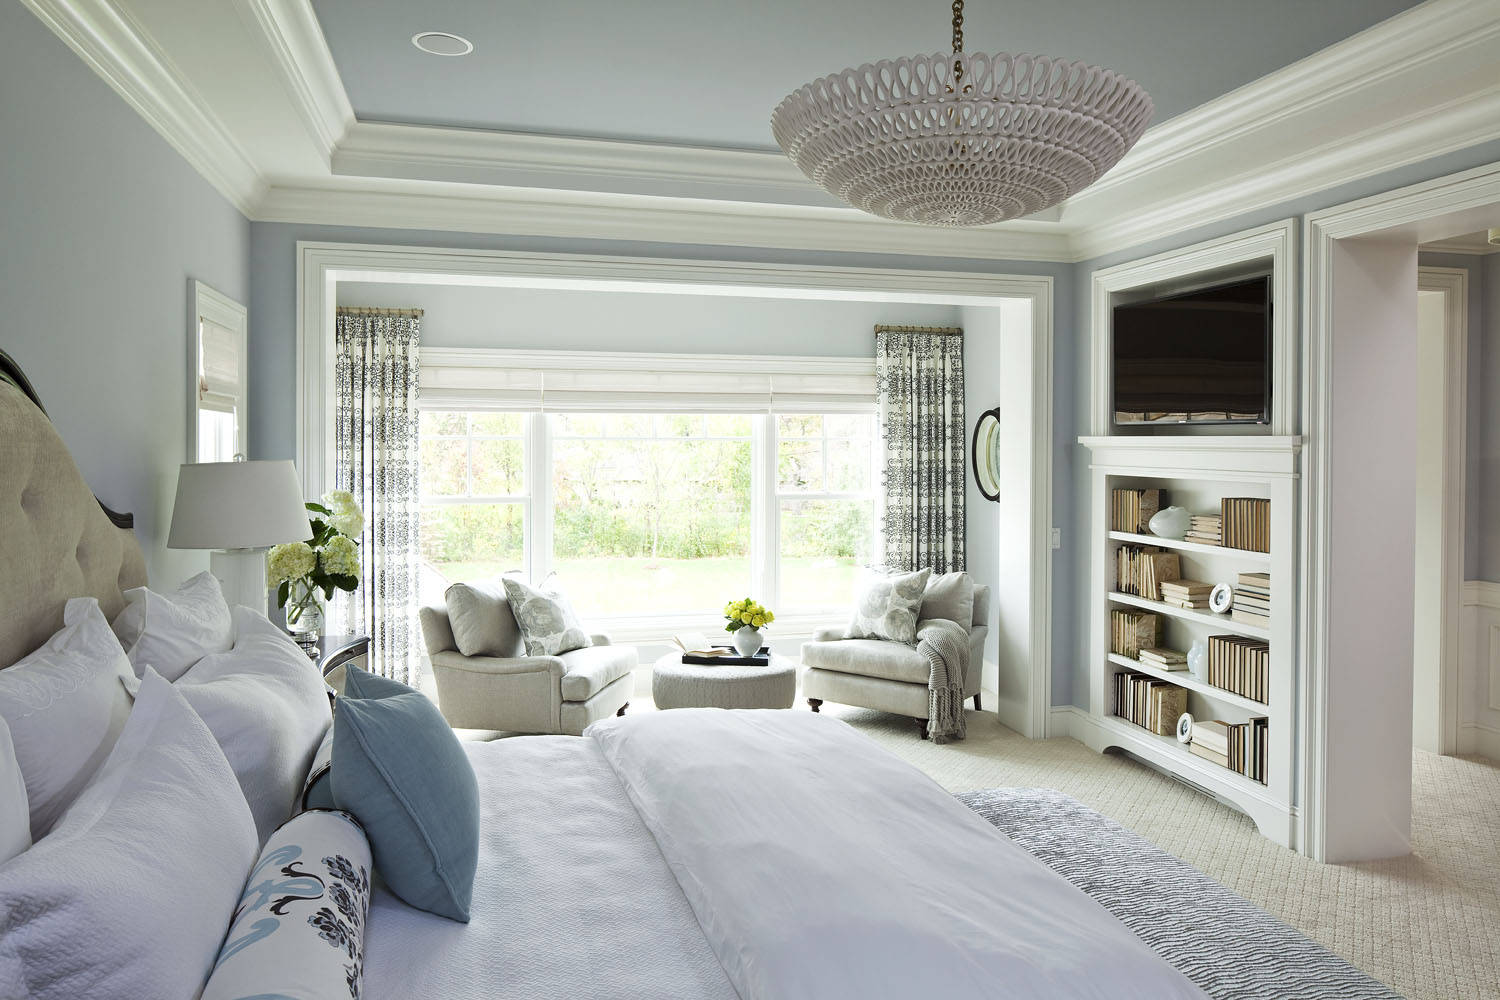 Bedding And Bed Pillows Plus Upholstered Headboard Also Bookcase With Contemporary Chandelier And Crown Molding Plus Best Interior Paint With Painted Ceiling And Textured Carpet